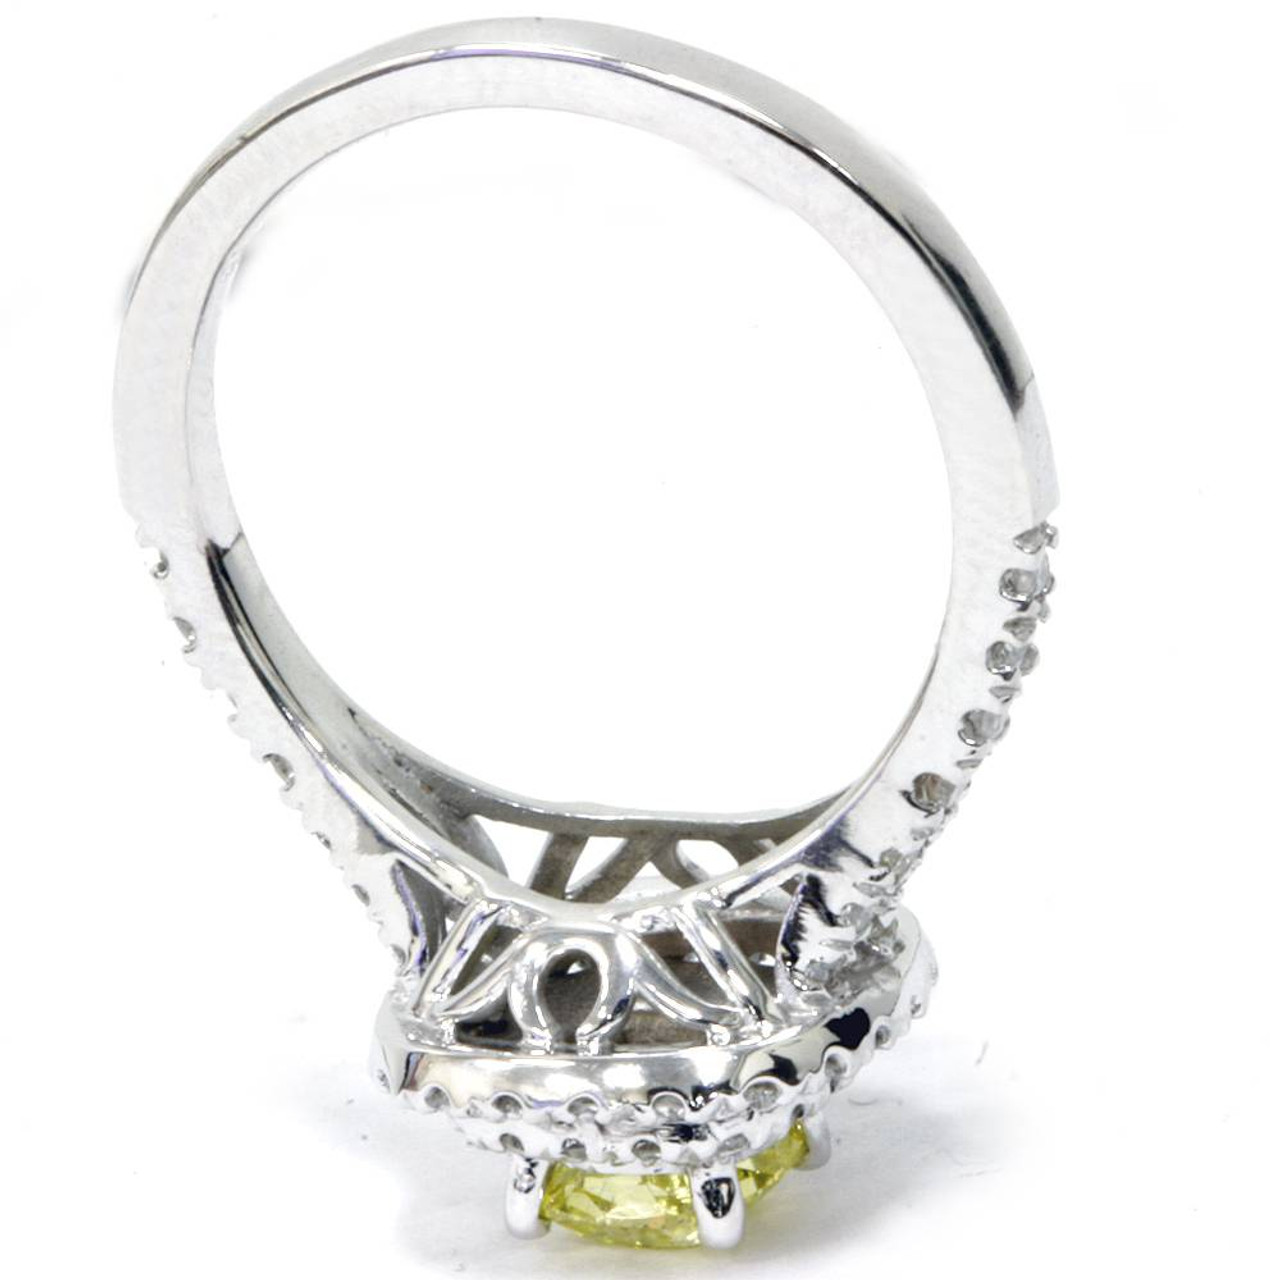 5556983041 1 1/2 Ct Canary Cushion Diamond Double Halo Engagement Ring 14K White Gold